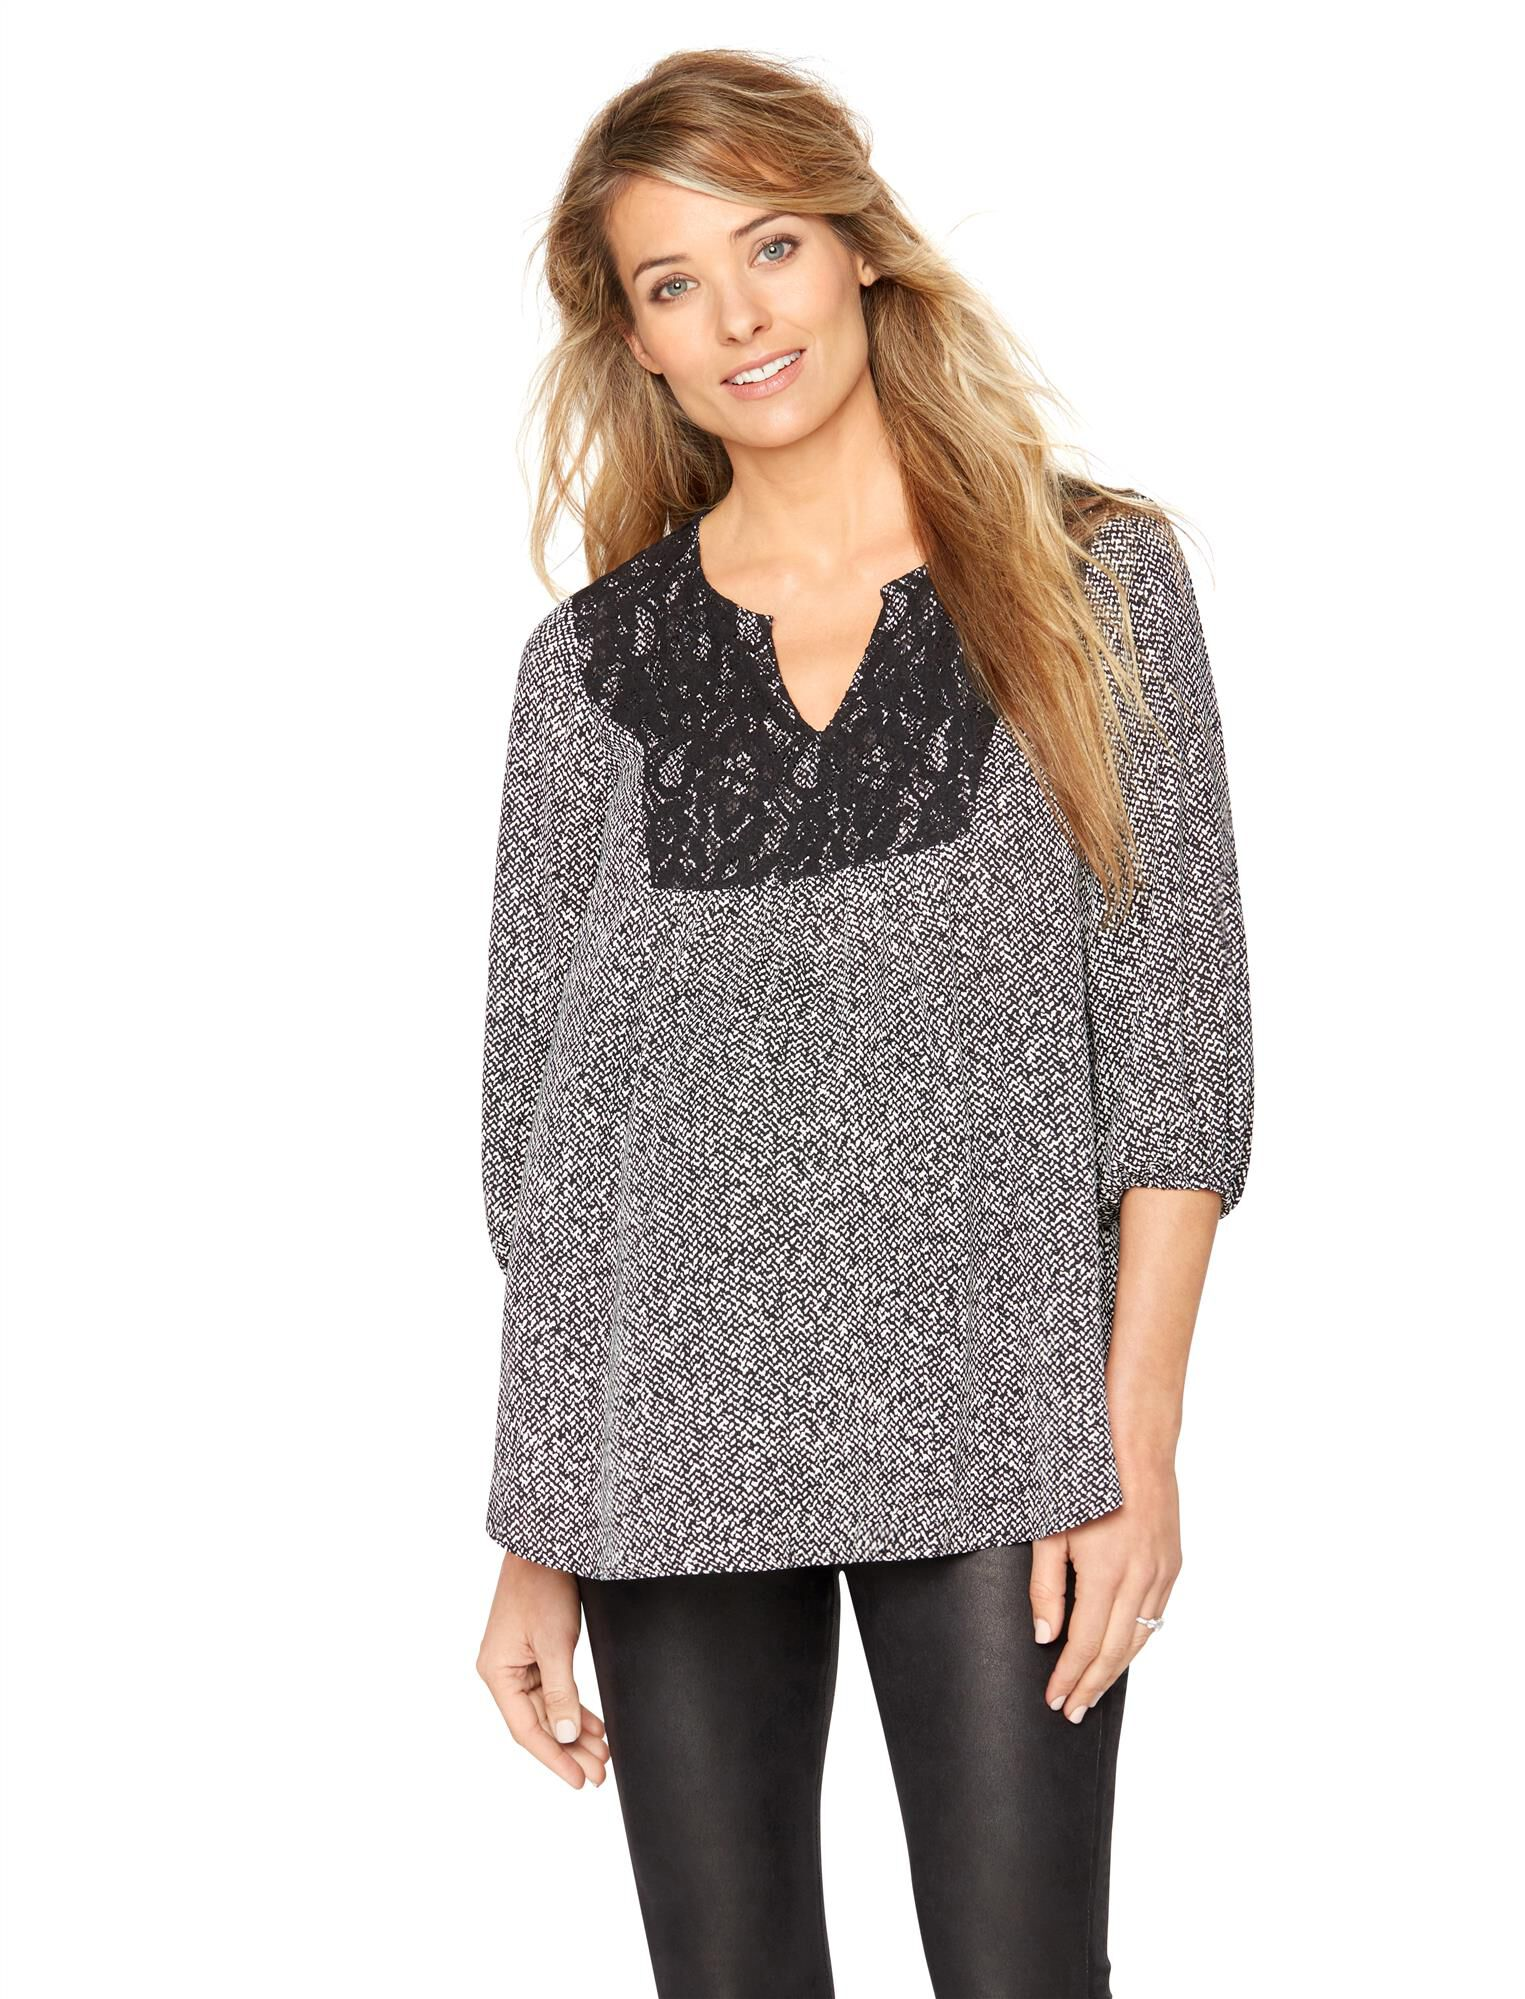 Lace Maternity Blouse